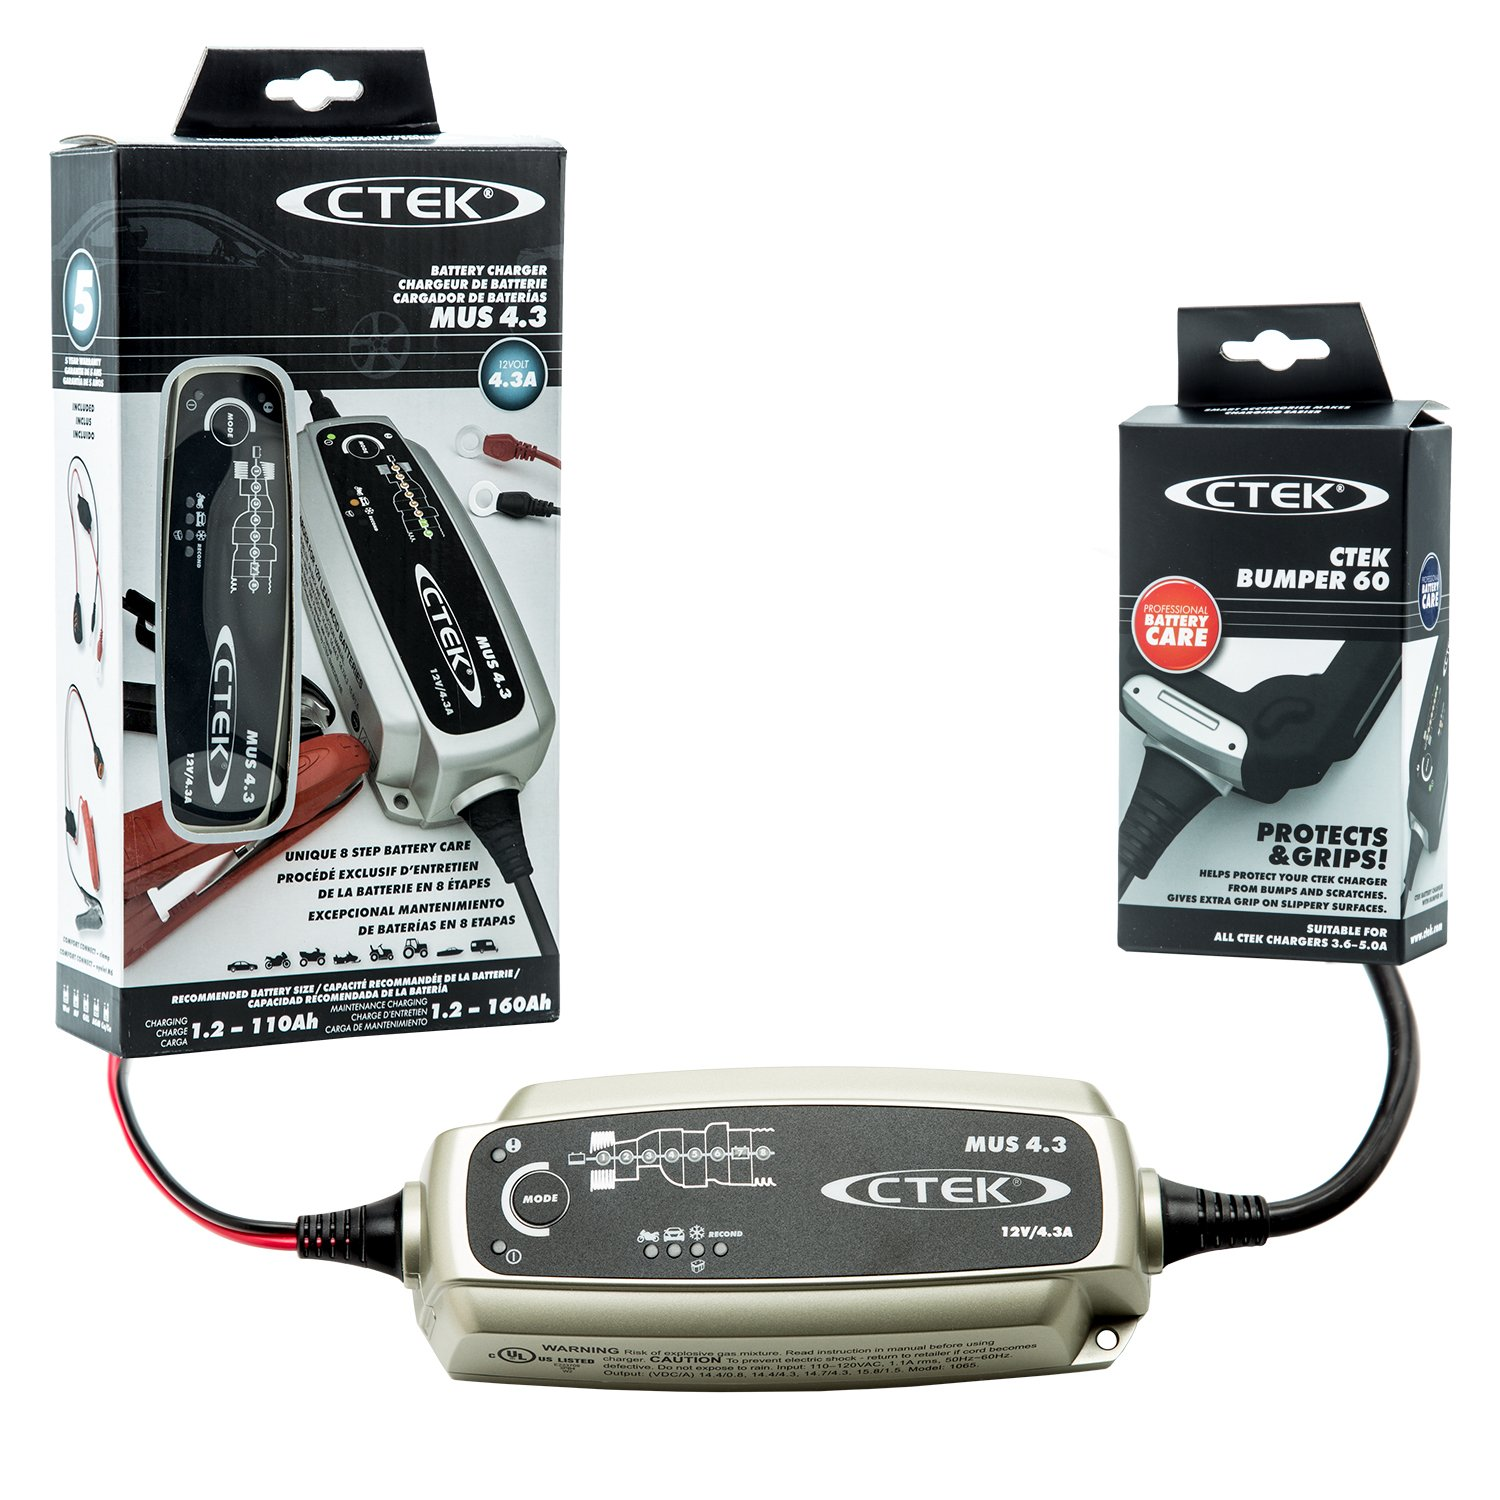 CTEK (56-864) MUS 4.3 12 Volt Fully Automatic 8 Step Battery Charger with (56-915) Black Bumper Accessory